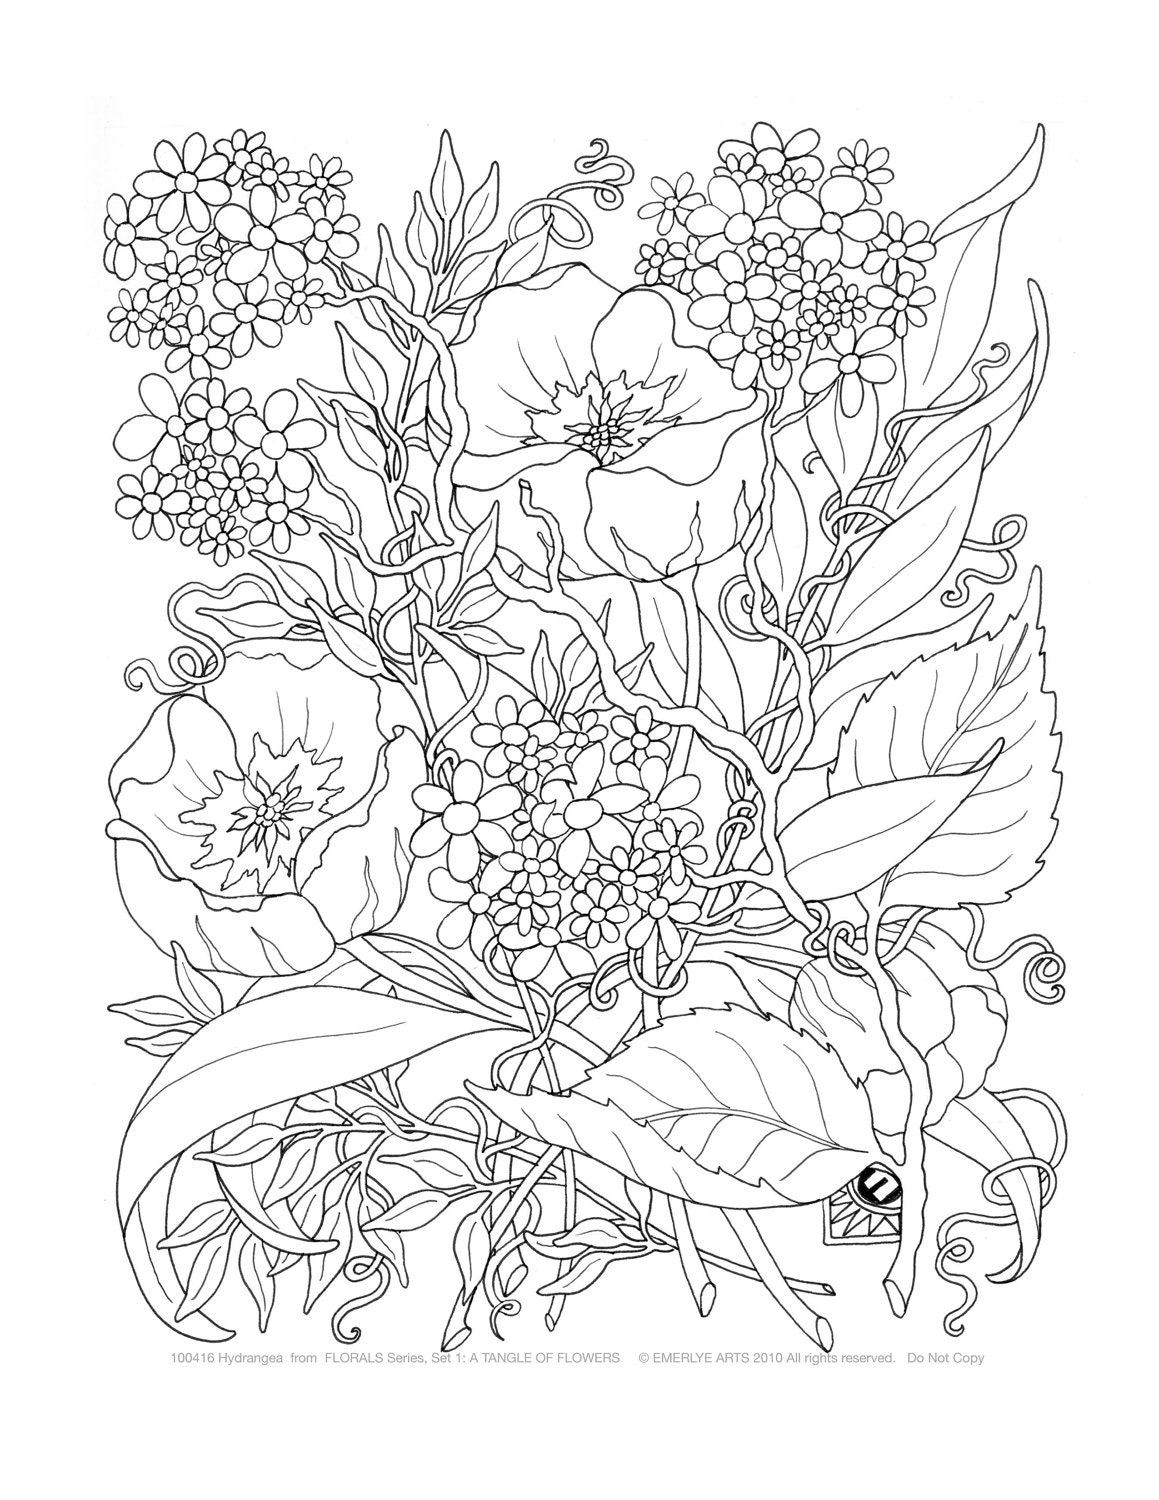 Adult coloring a tangle of flowers set of 8 by emerlyearts for Coloring pages for adults difficult flower